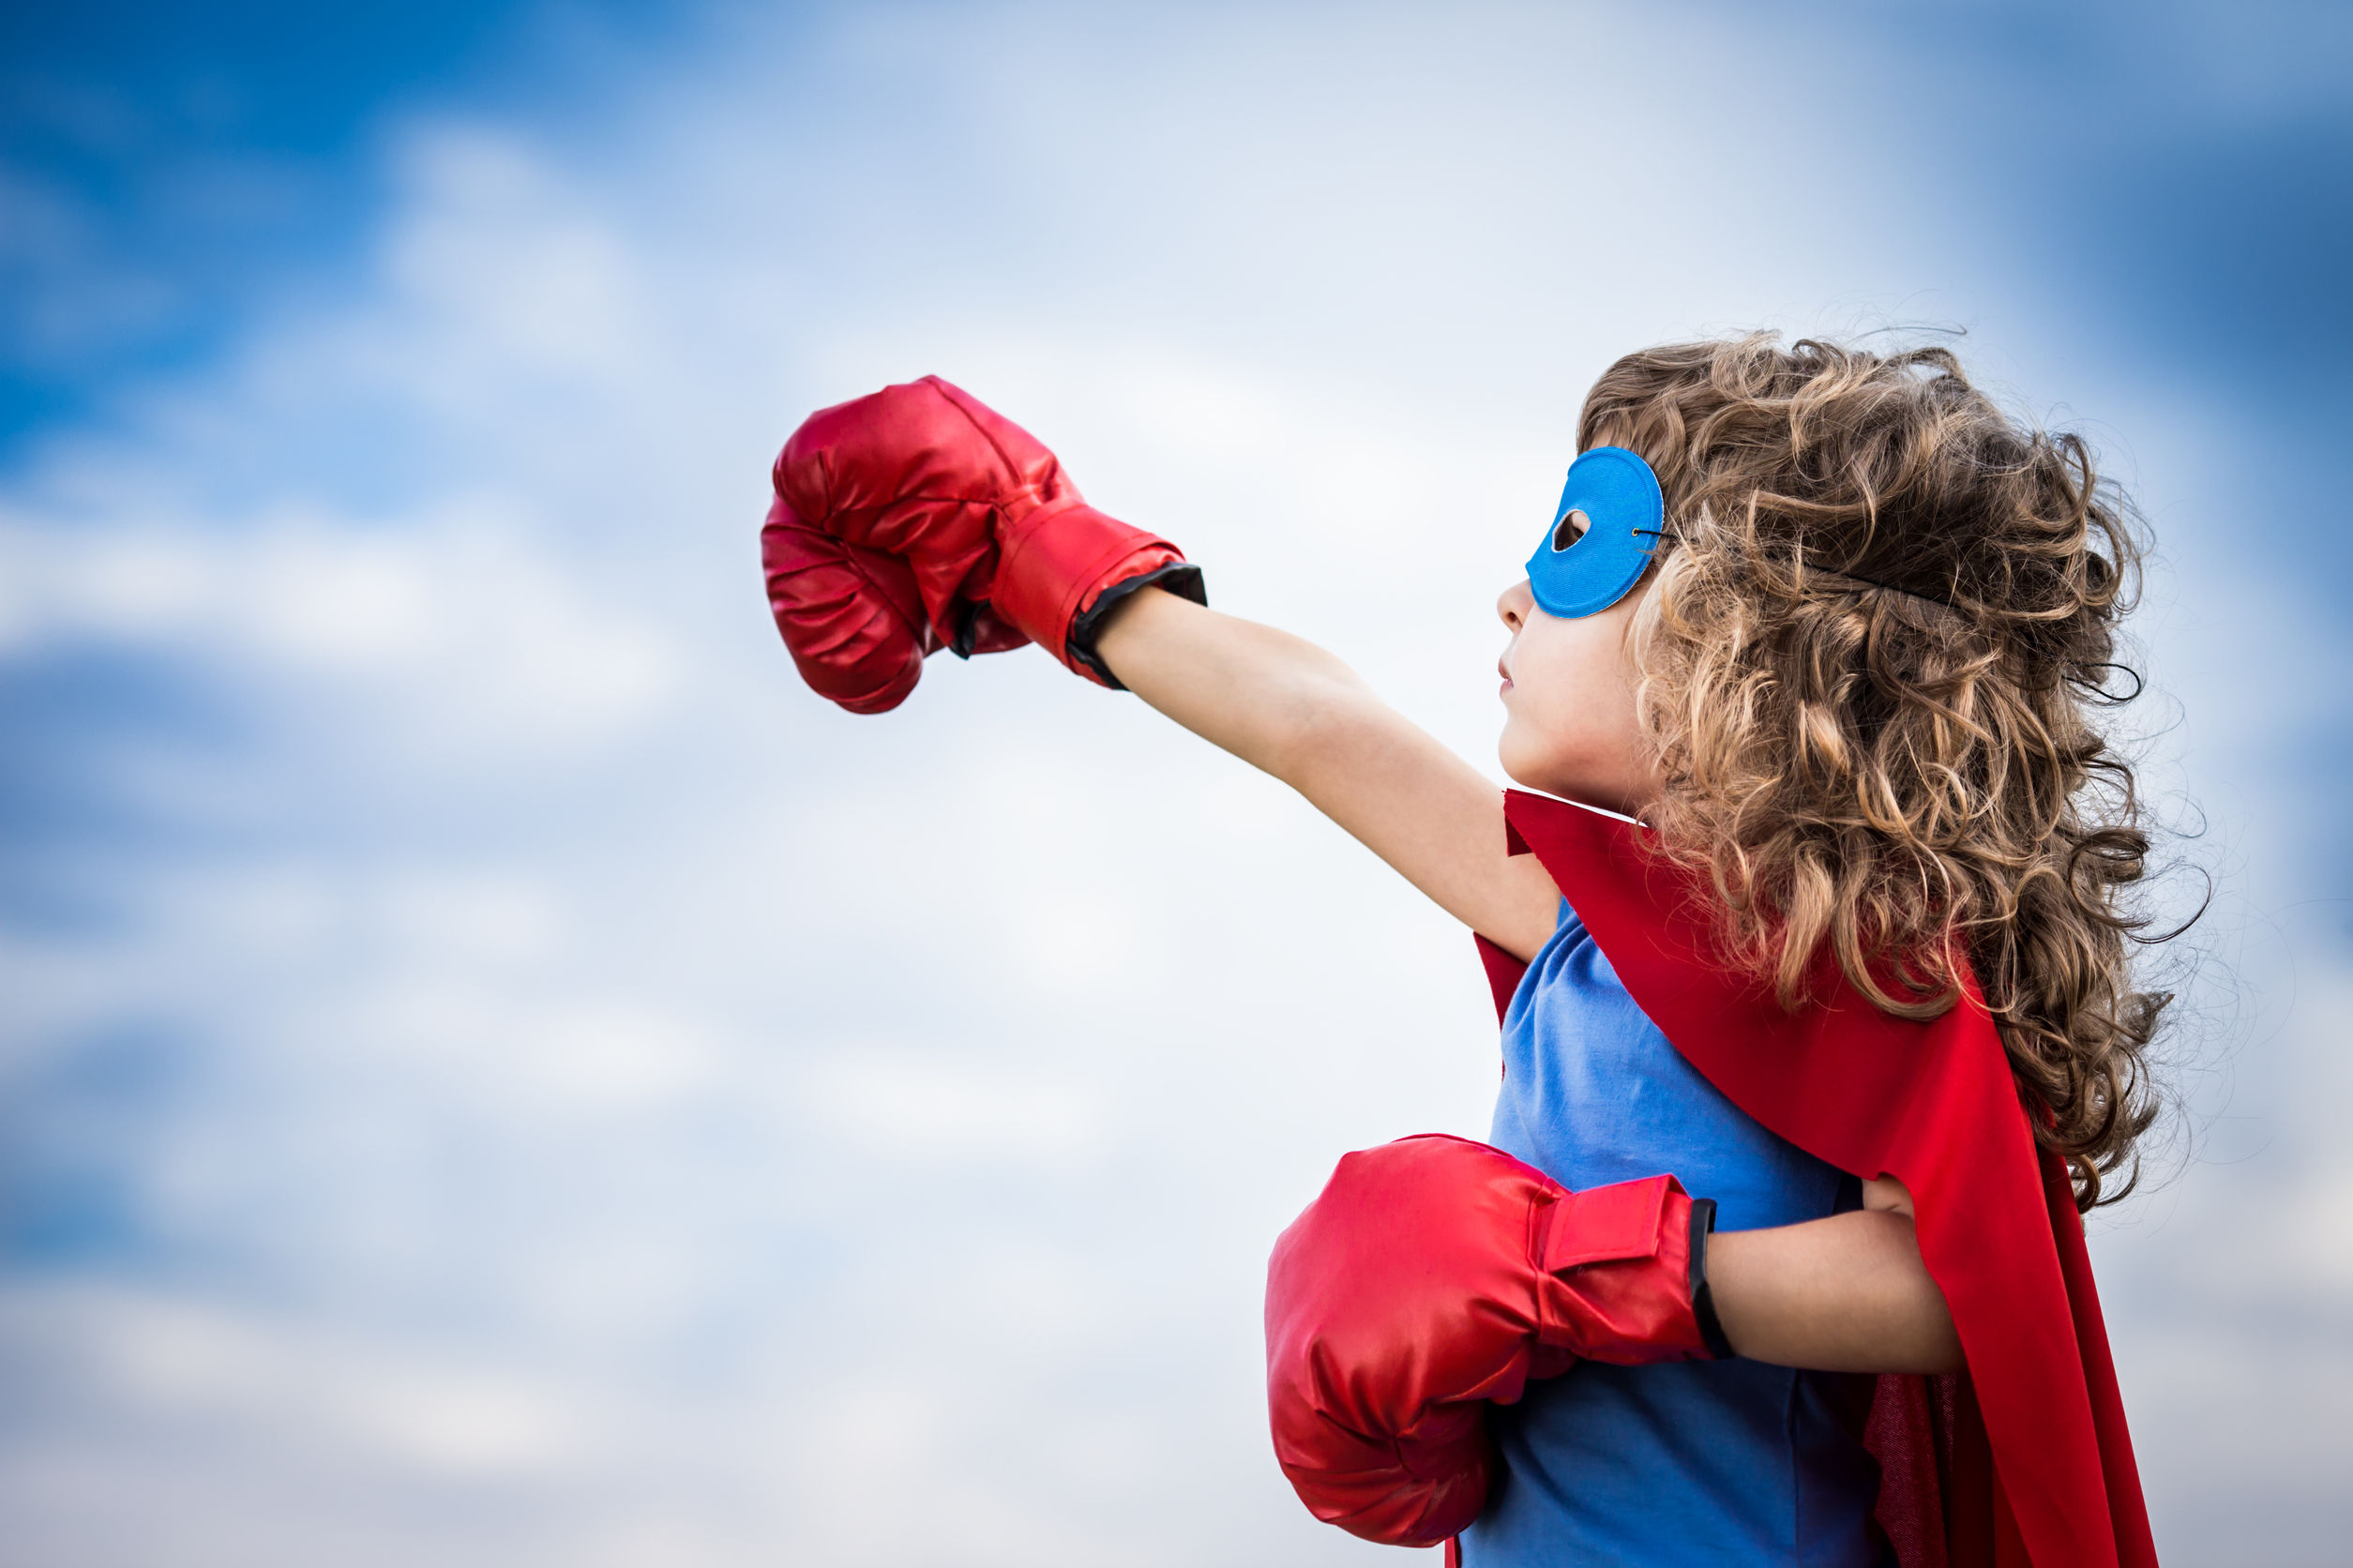 26818997 - superhero kid against summer sky background. girl power and feminism concept